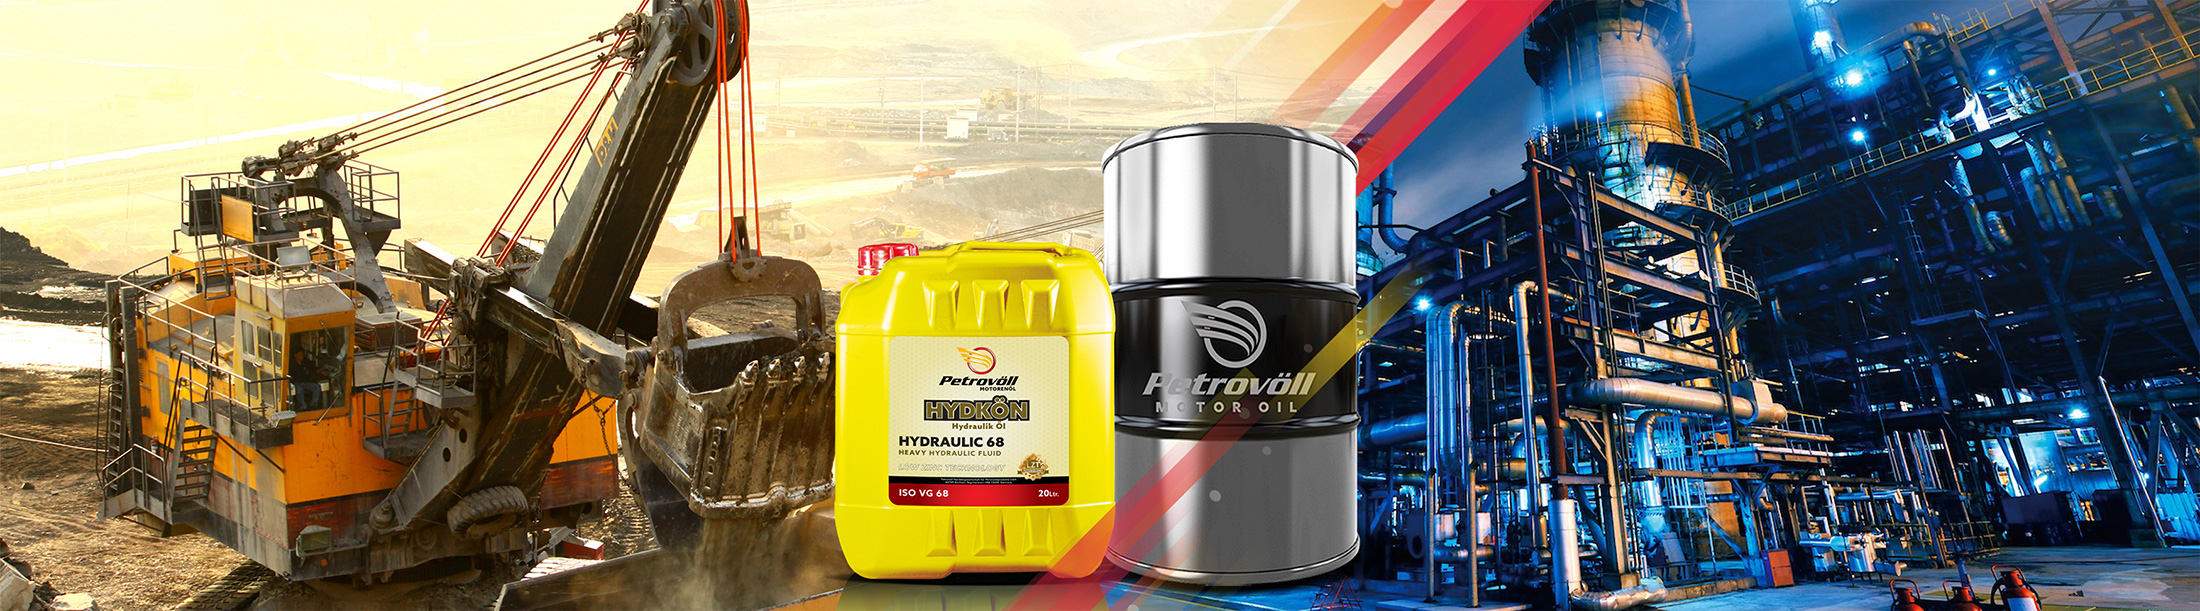 Petrovoll Industrial Oils